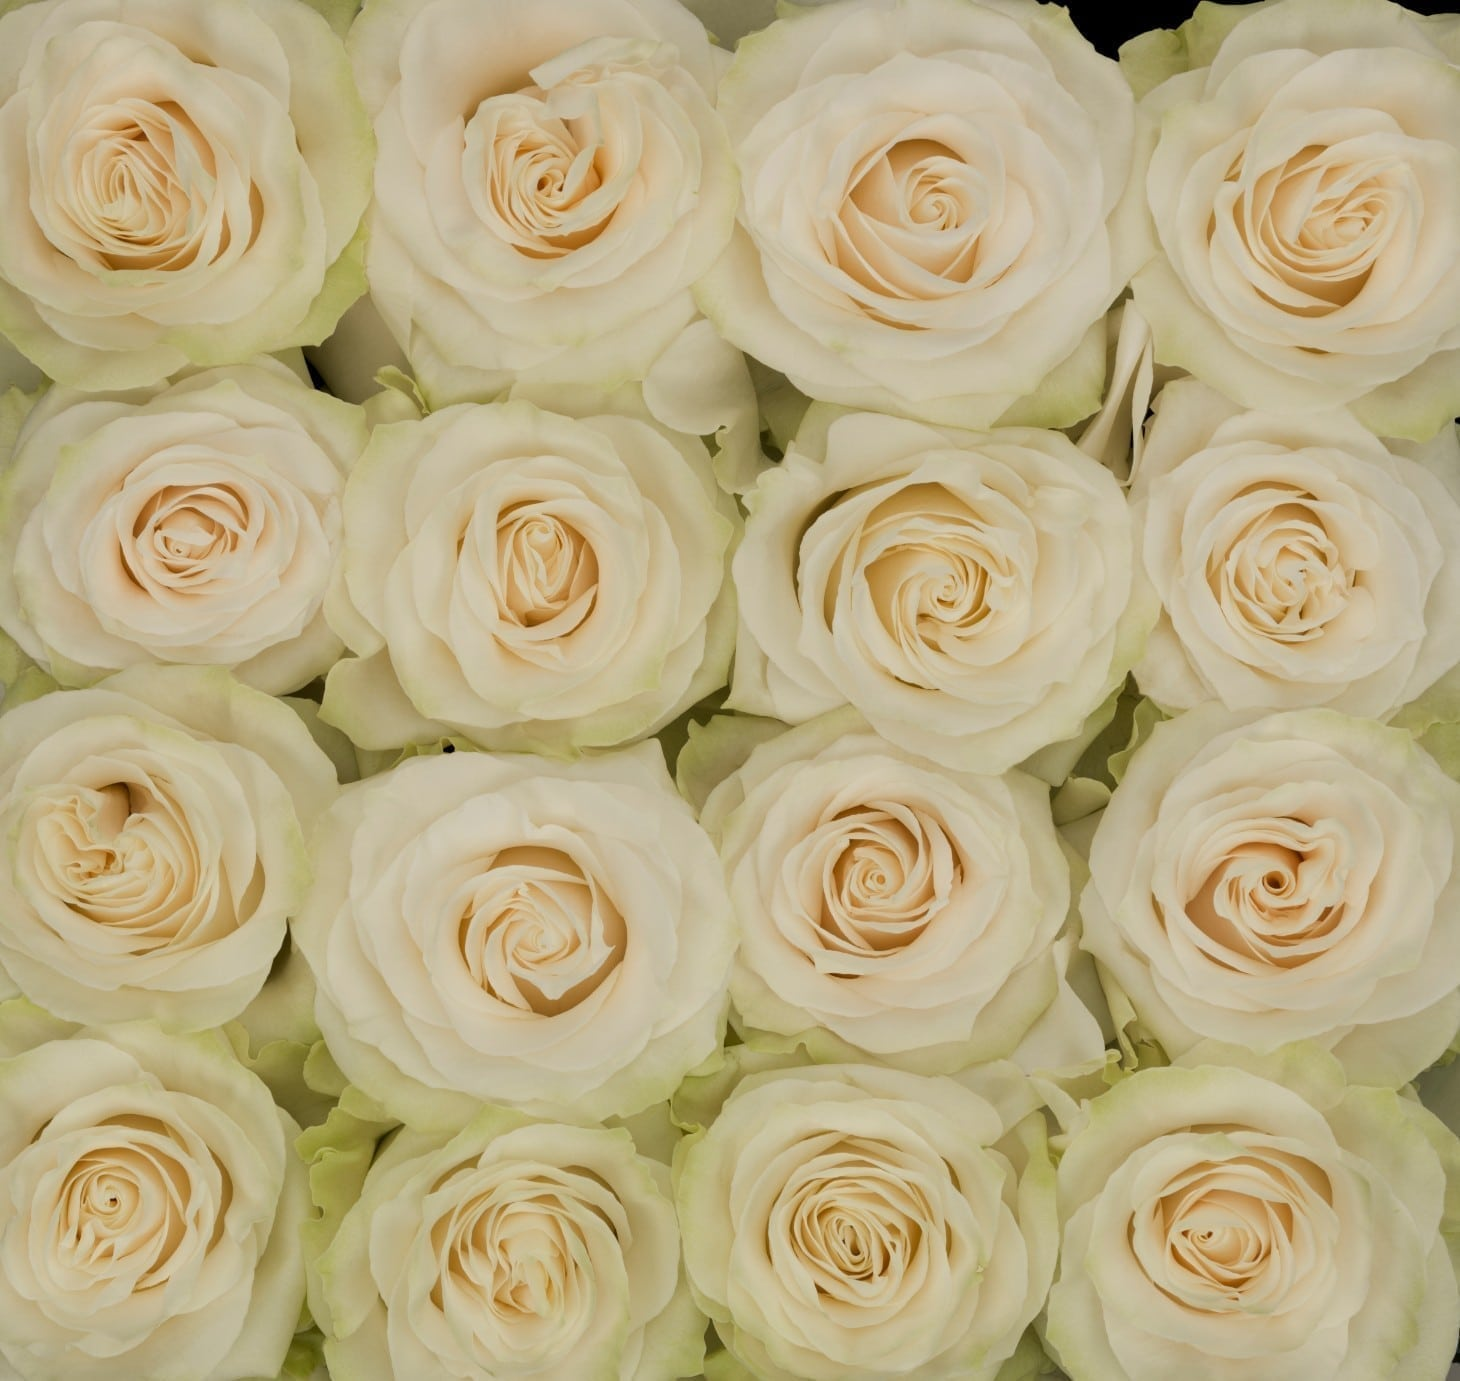 Roses Pure White Wholesale Flowers